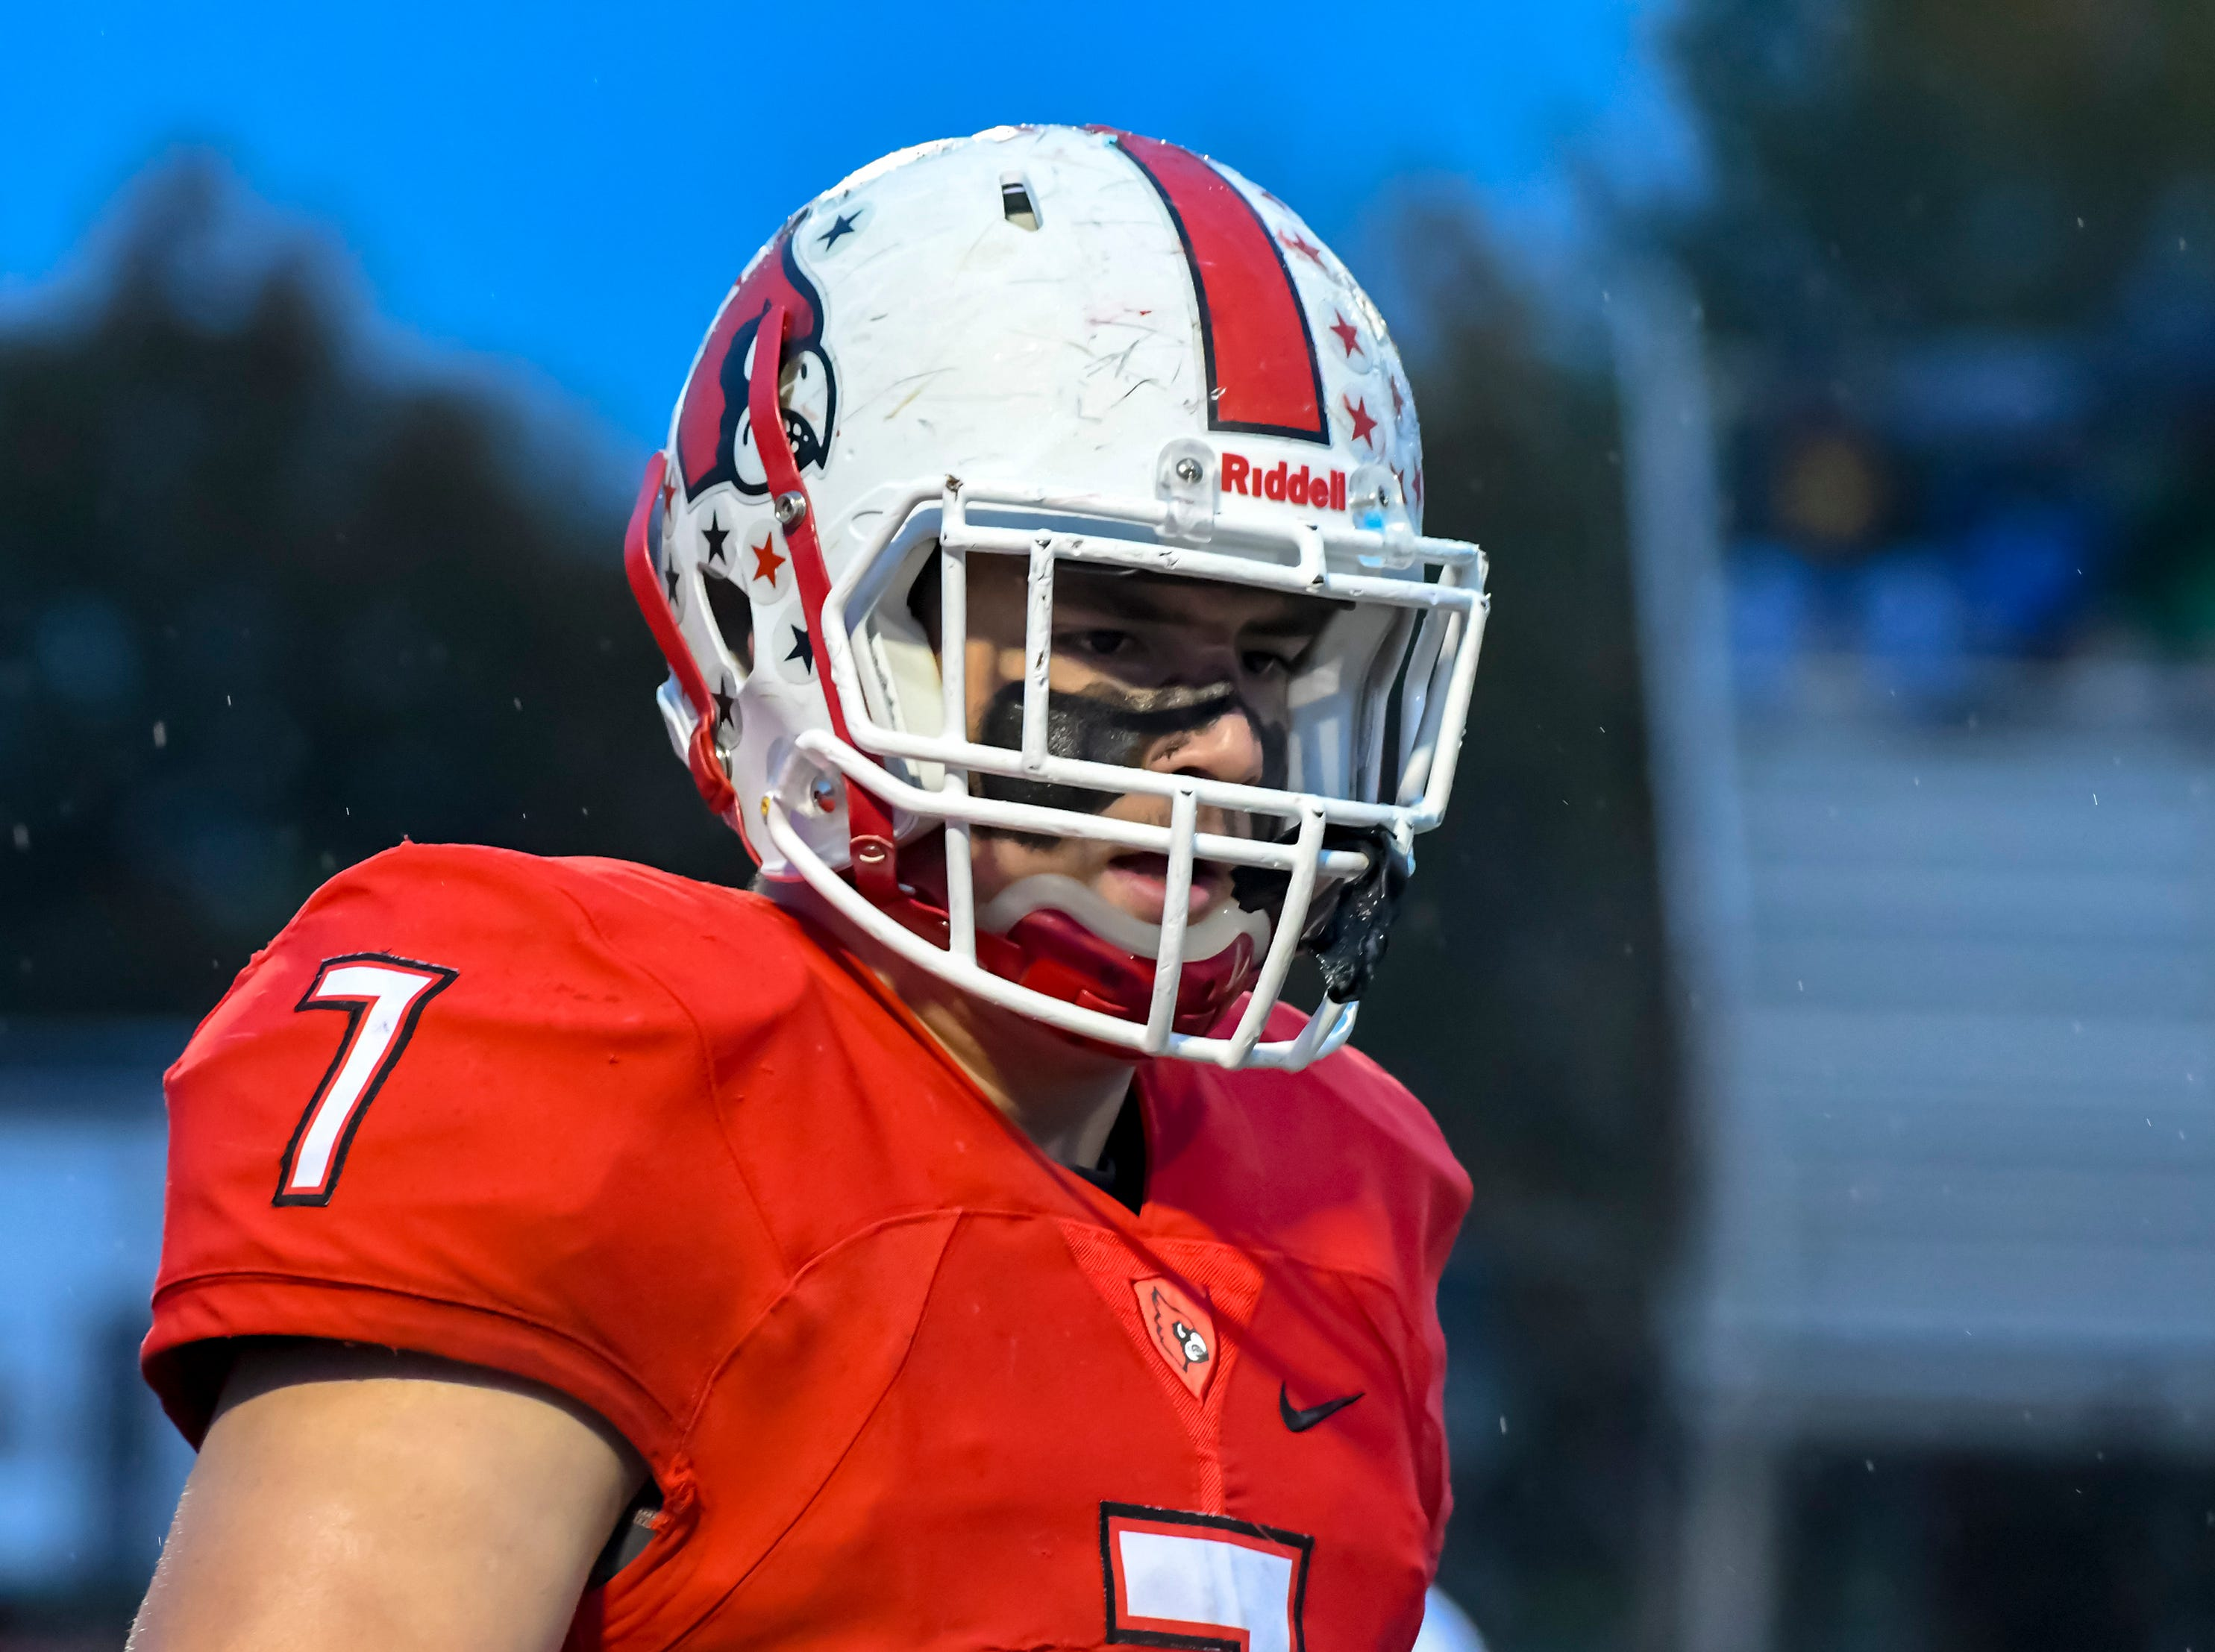 Colerain linebacker Luke Bolden looks on before the games against St. X in the OHSAA DI Region 4 Playoffs at Colerain High School,  Friday Nov. 2, 2018